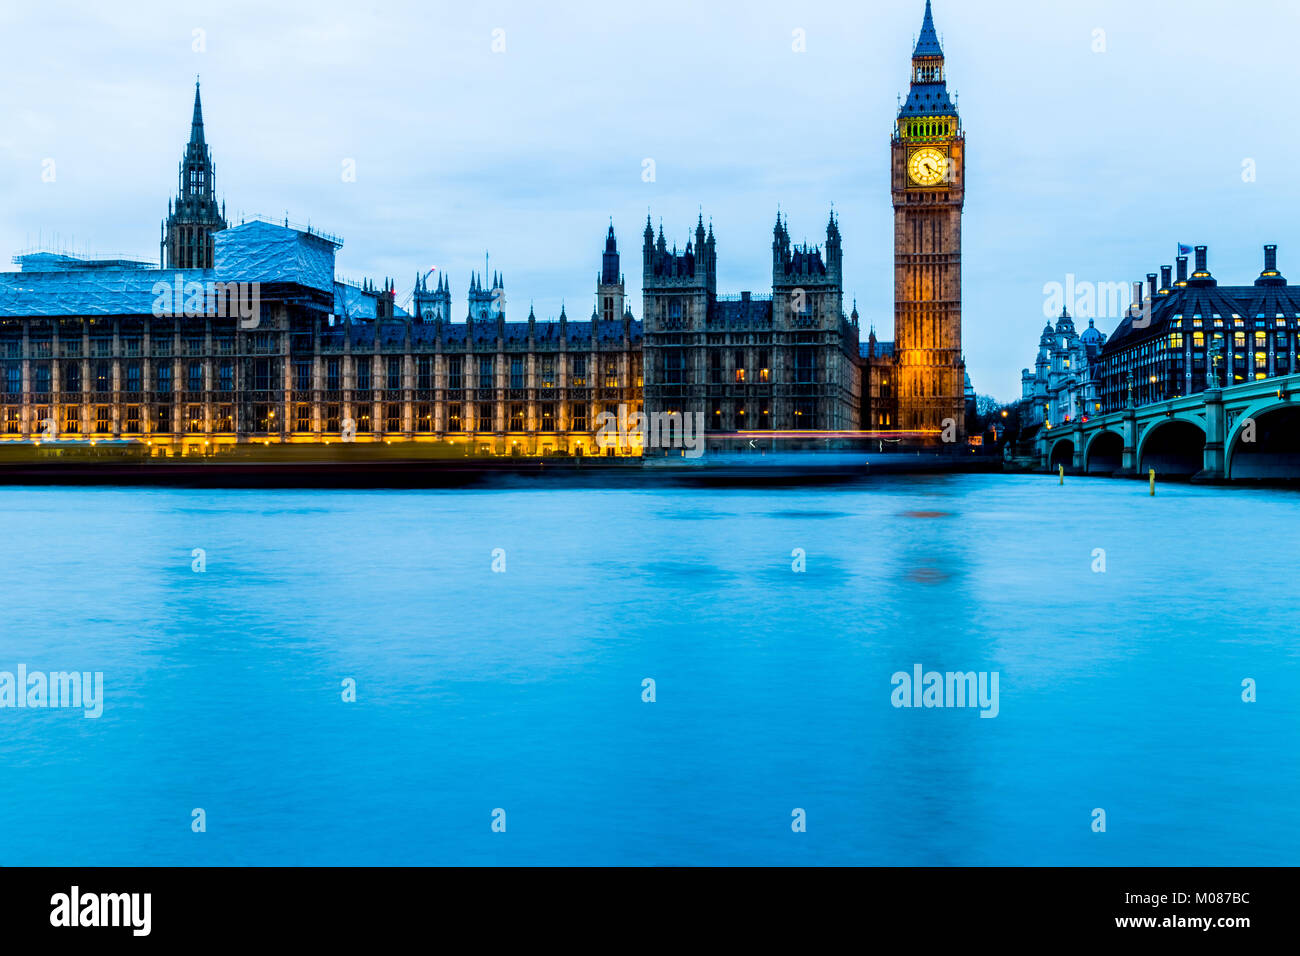 Big Ben, Houses of Parliament - Stock Image